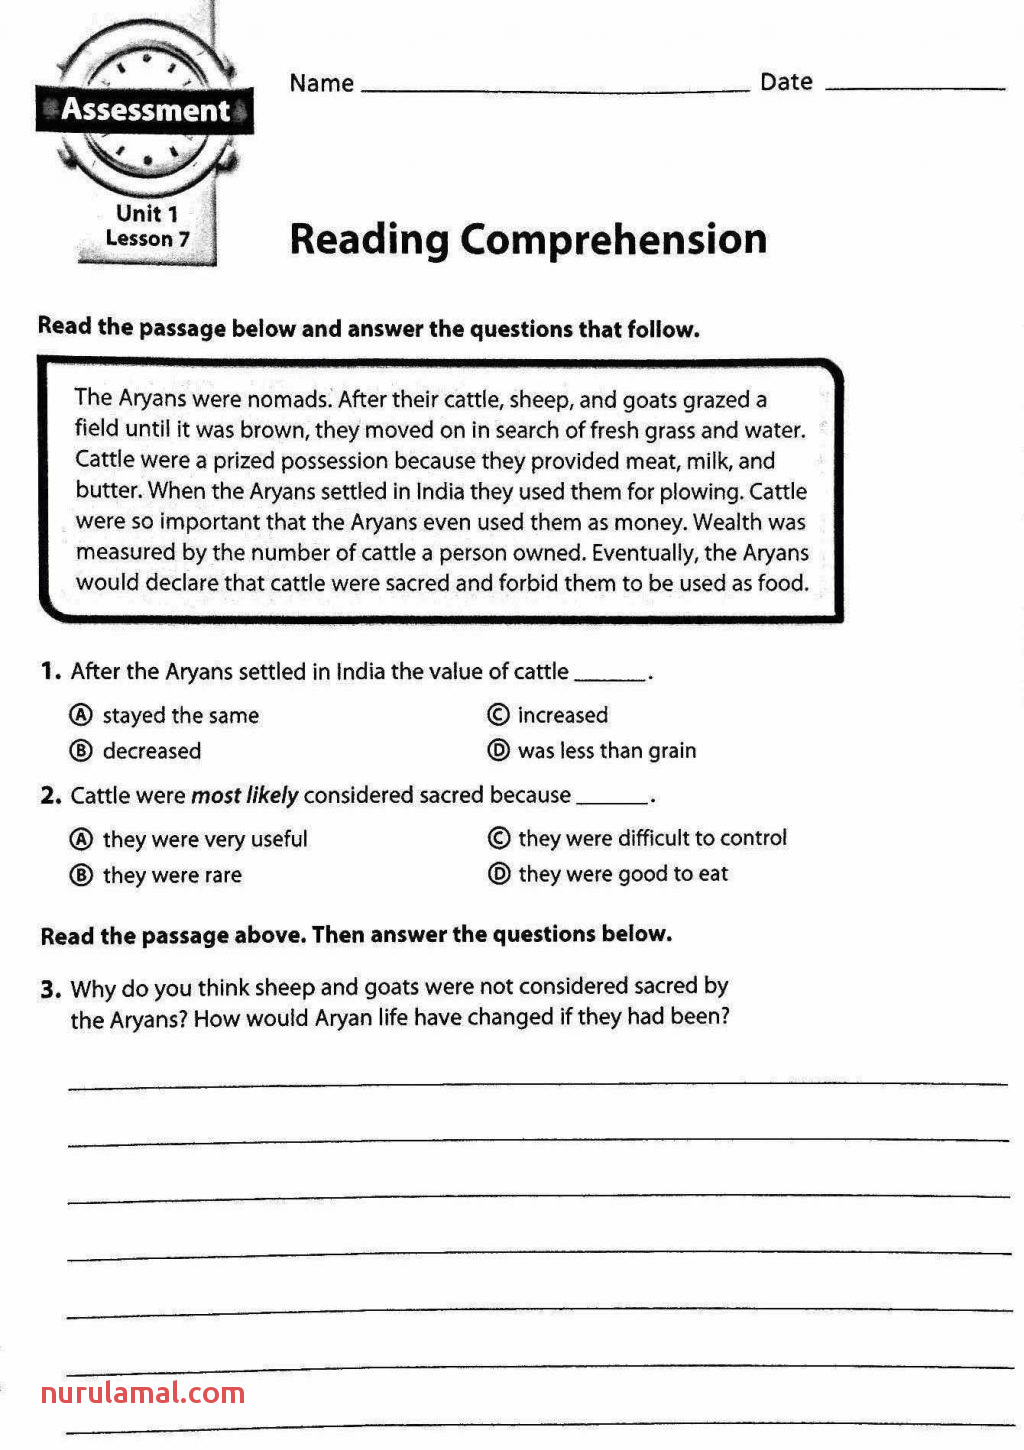 Worksheet Ideas Marvelous Prehensionets for Grade